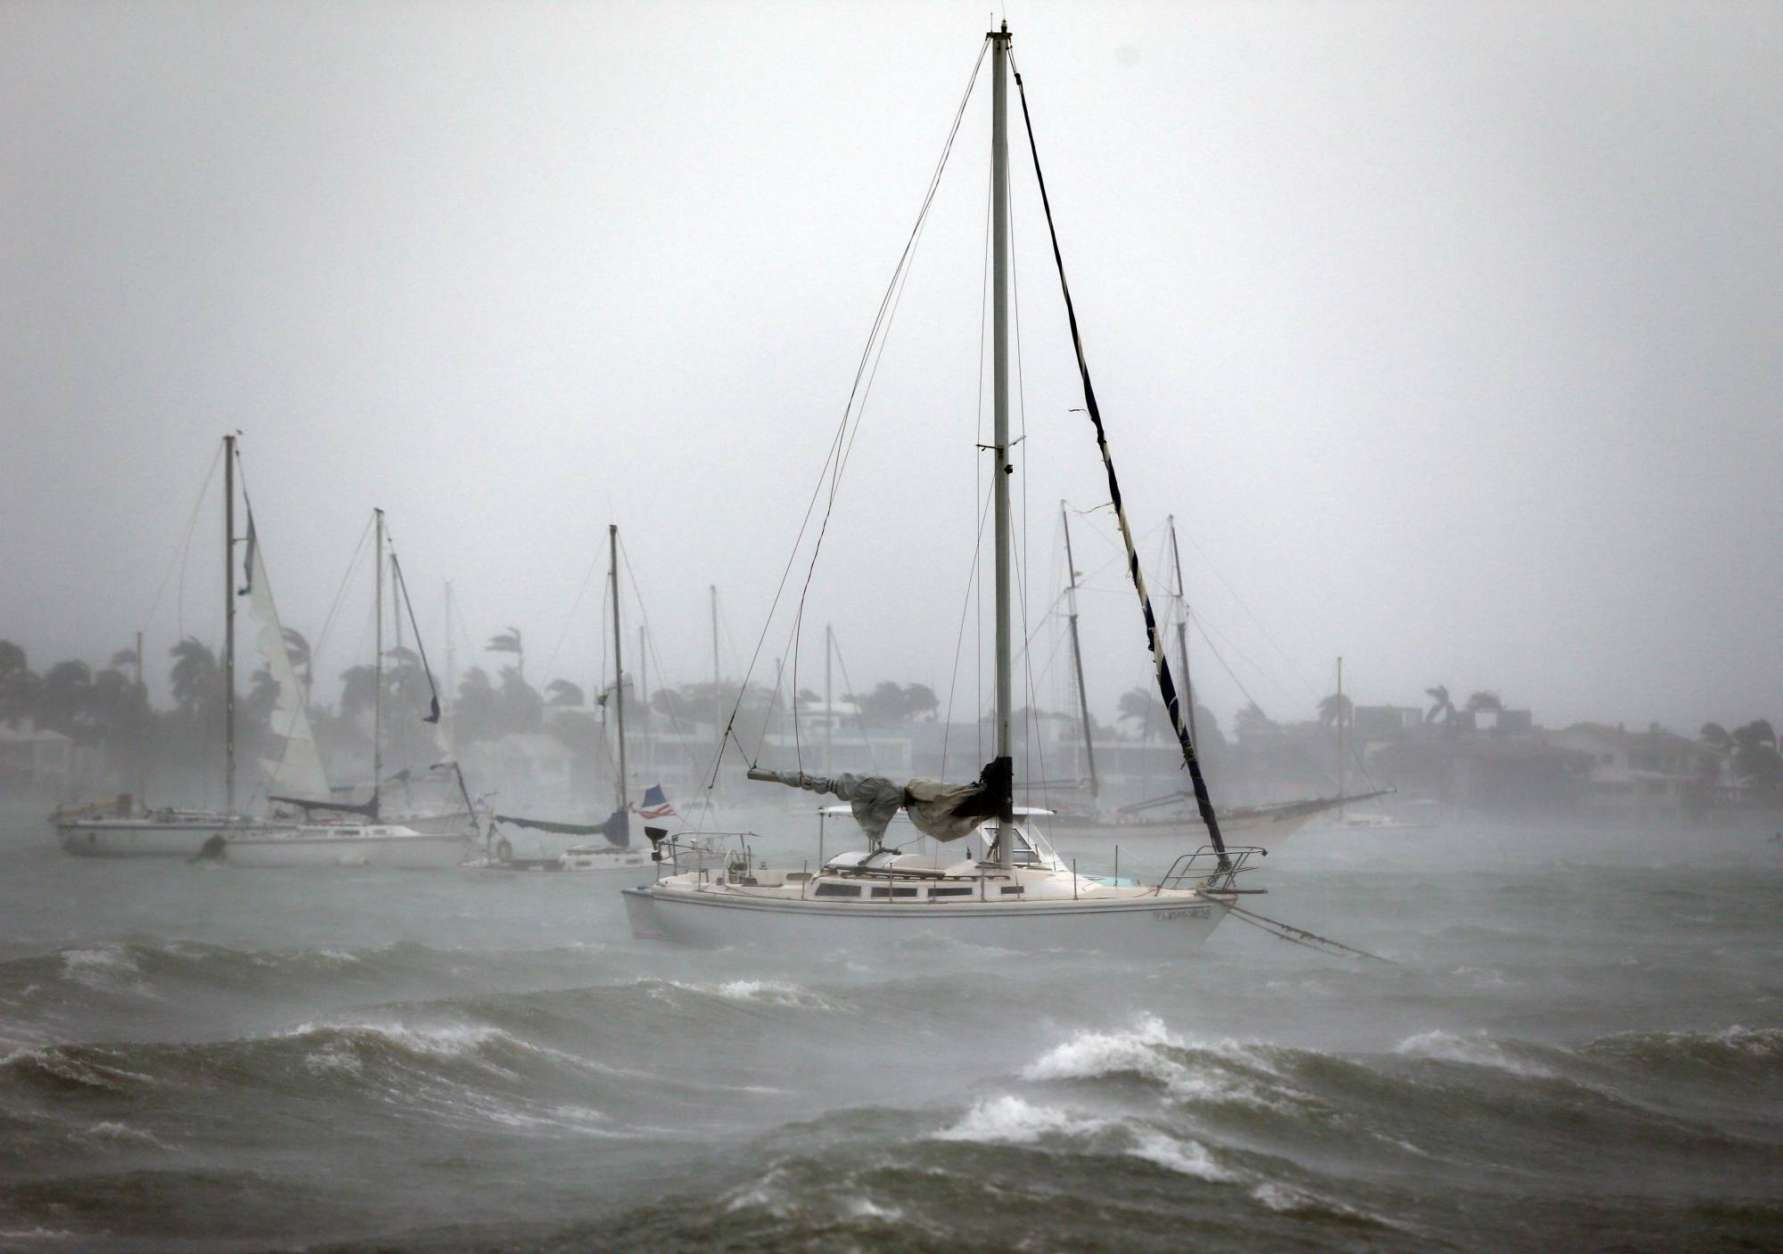 Sailboats moored near Watson Island ride out the winds and waves as Hurricane Irma passes by, Sunday, Sept. 10, 2017, in Miami Beach, Fla. (AP Photo/Wilfredo Lee)